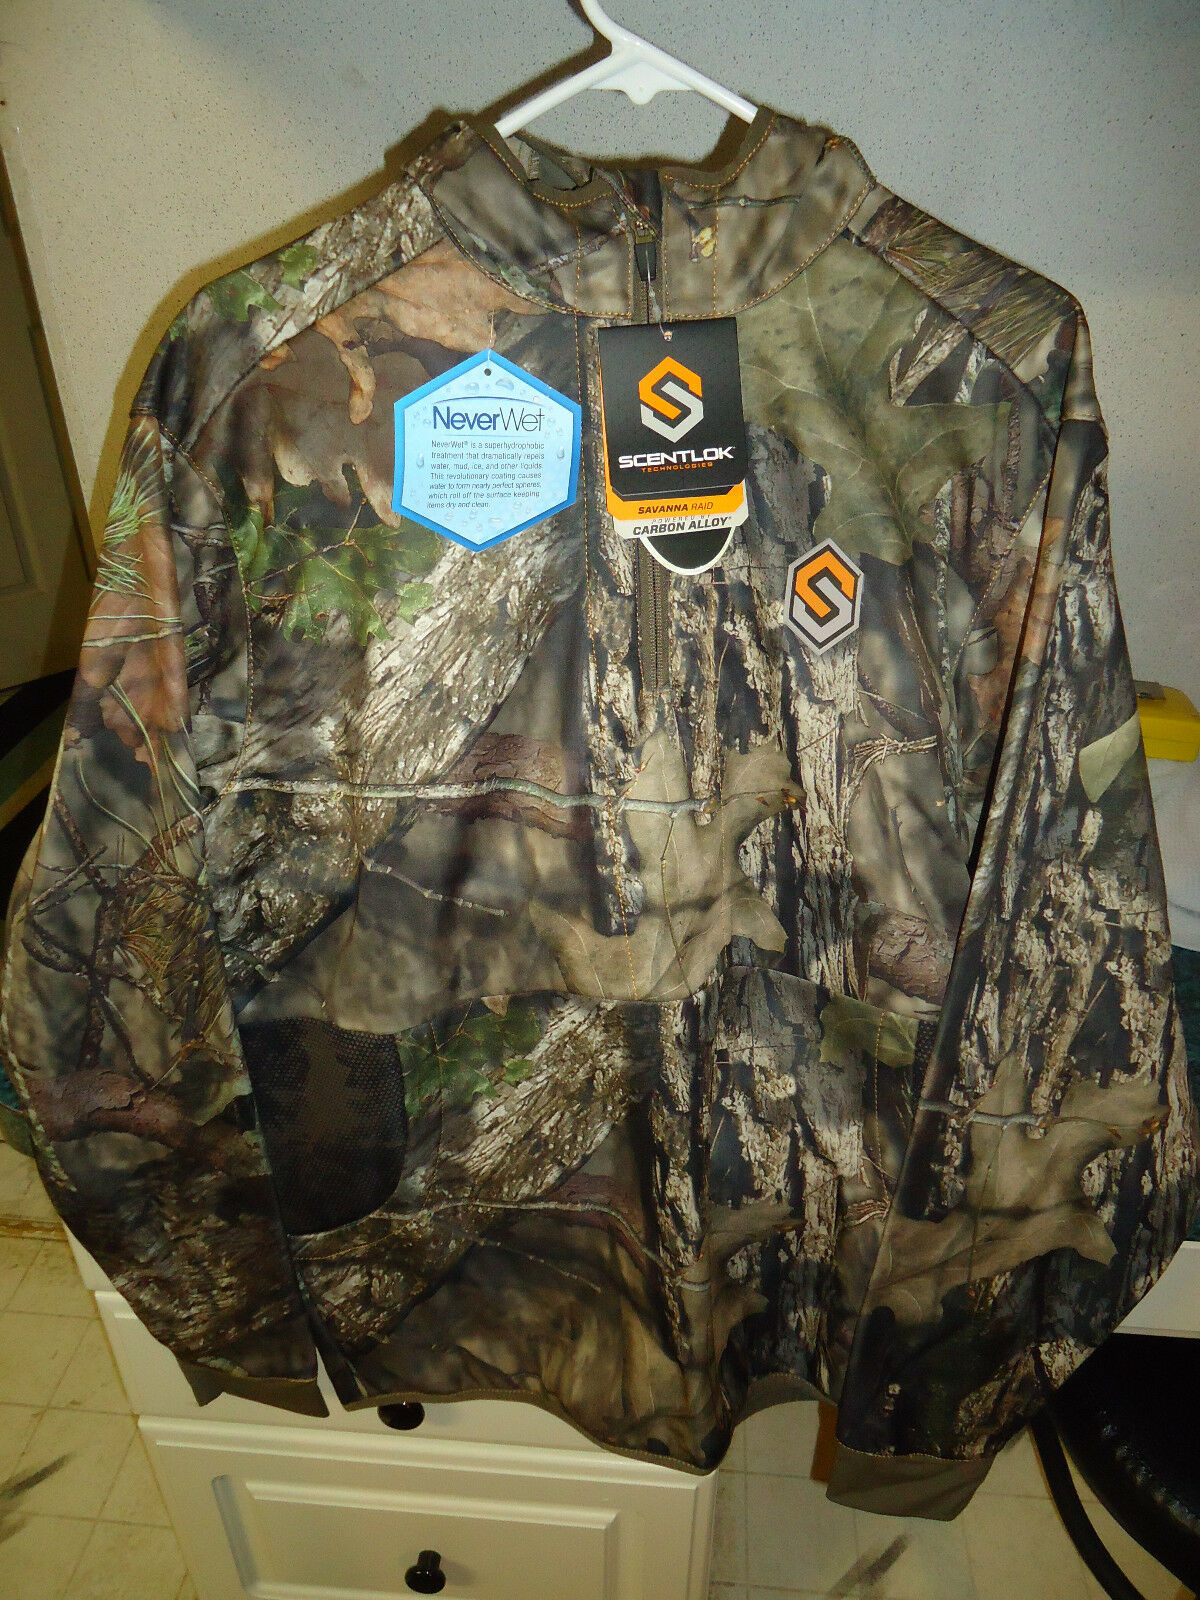 SCENTLOK SAVANNA RAID HOODIE MEN'S MEDIUM (M) -  99.99